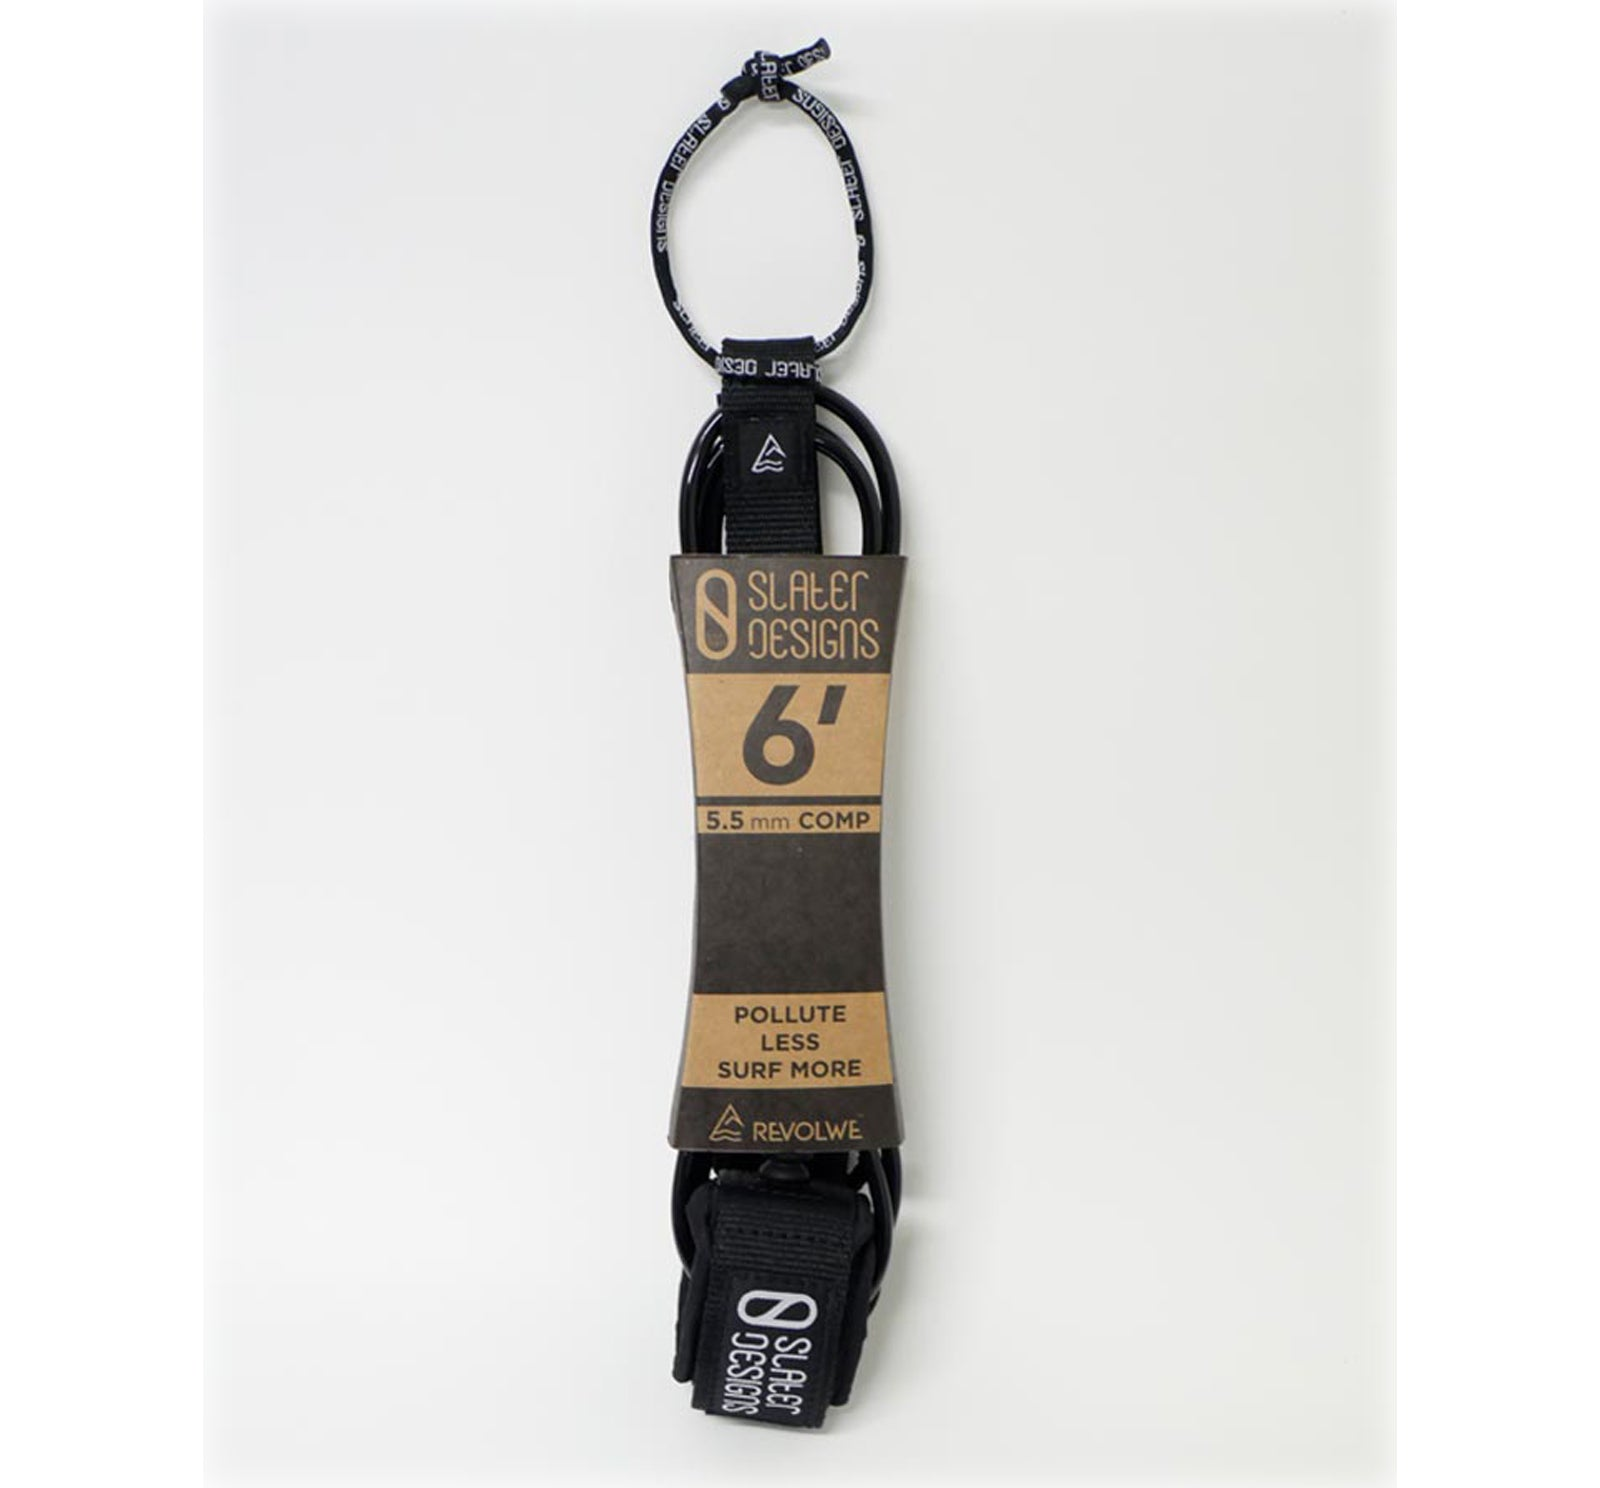 Slater Designs Comp 6' Surfboard Leash - Black